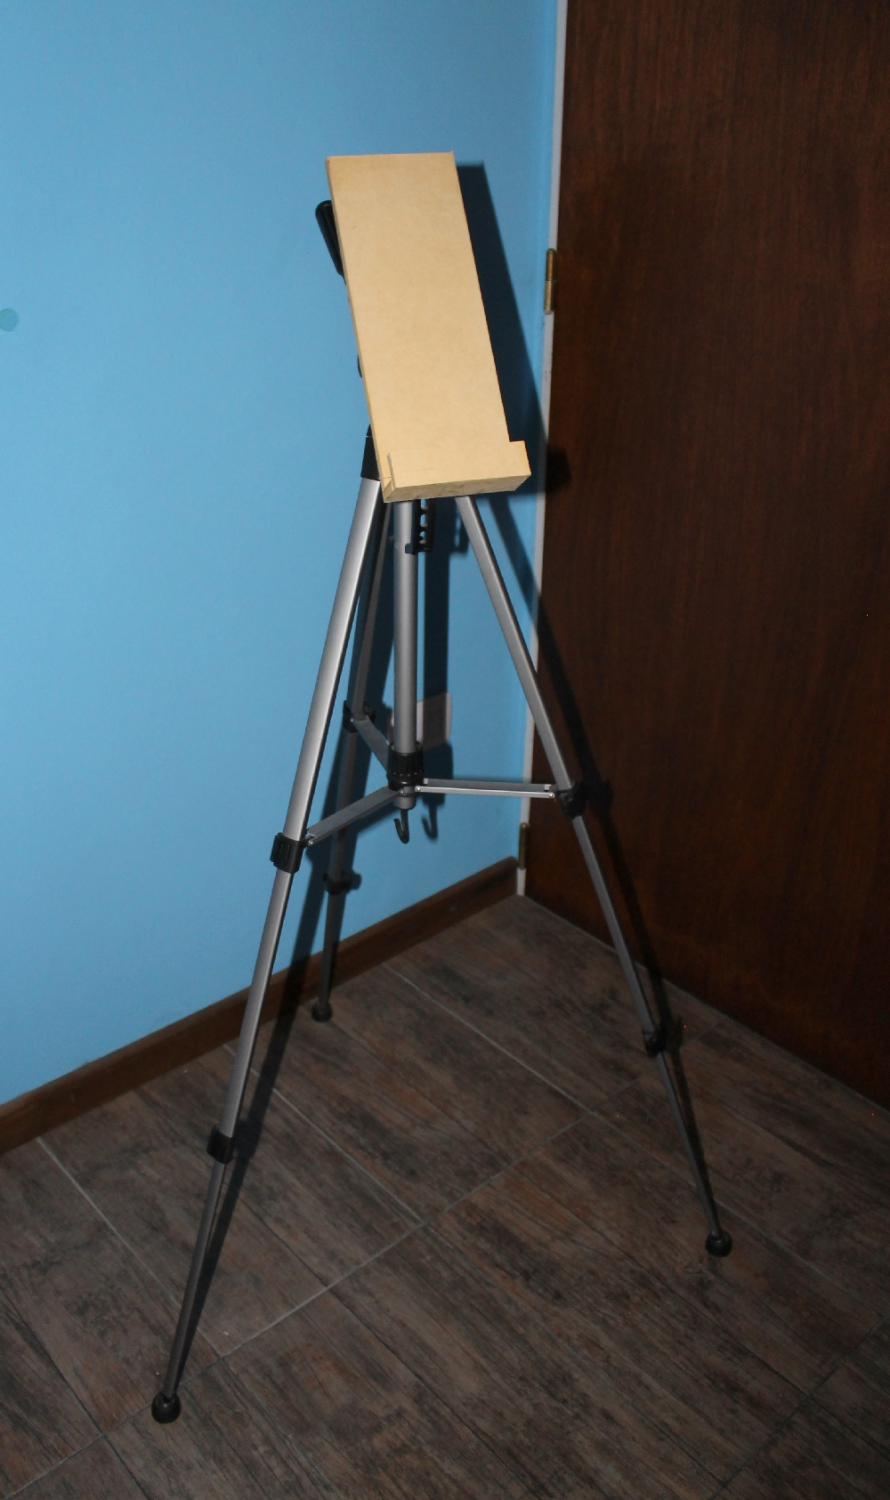 converting a camera tripod into an easel